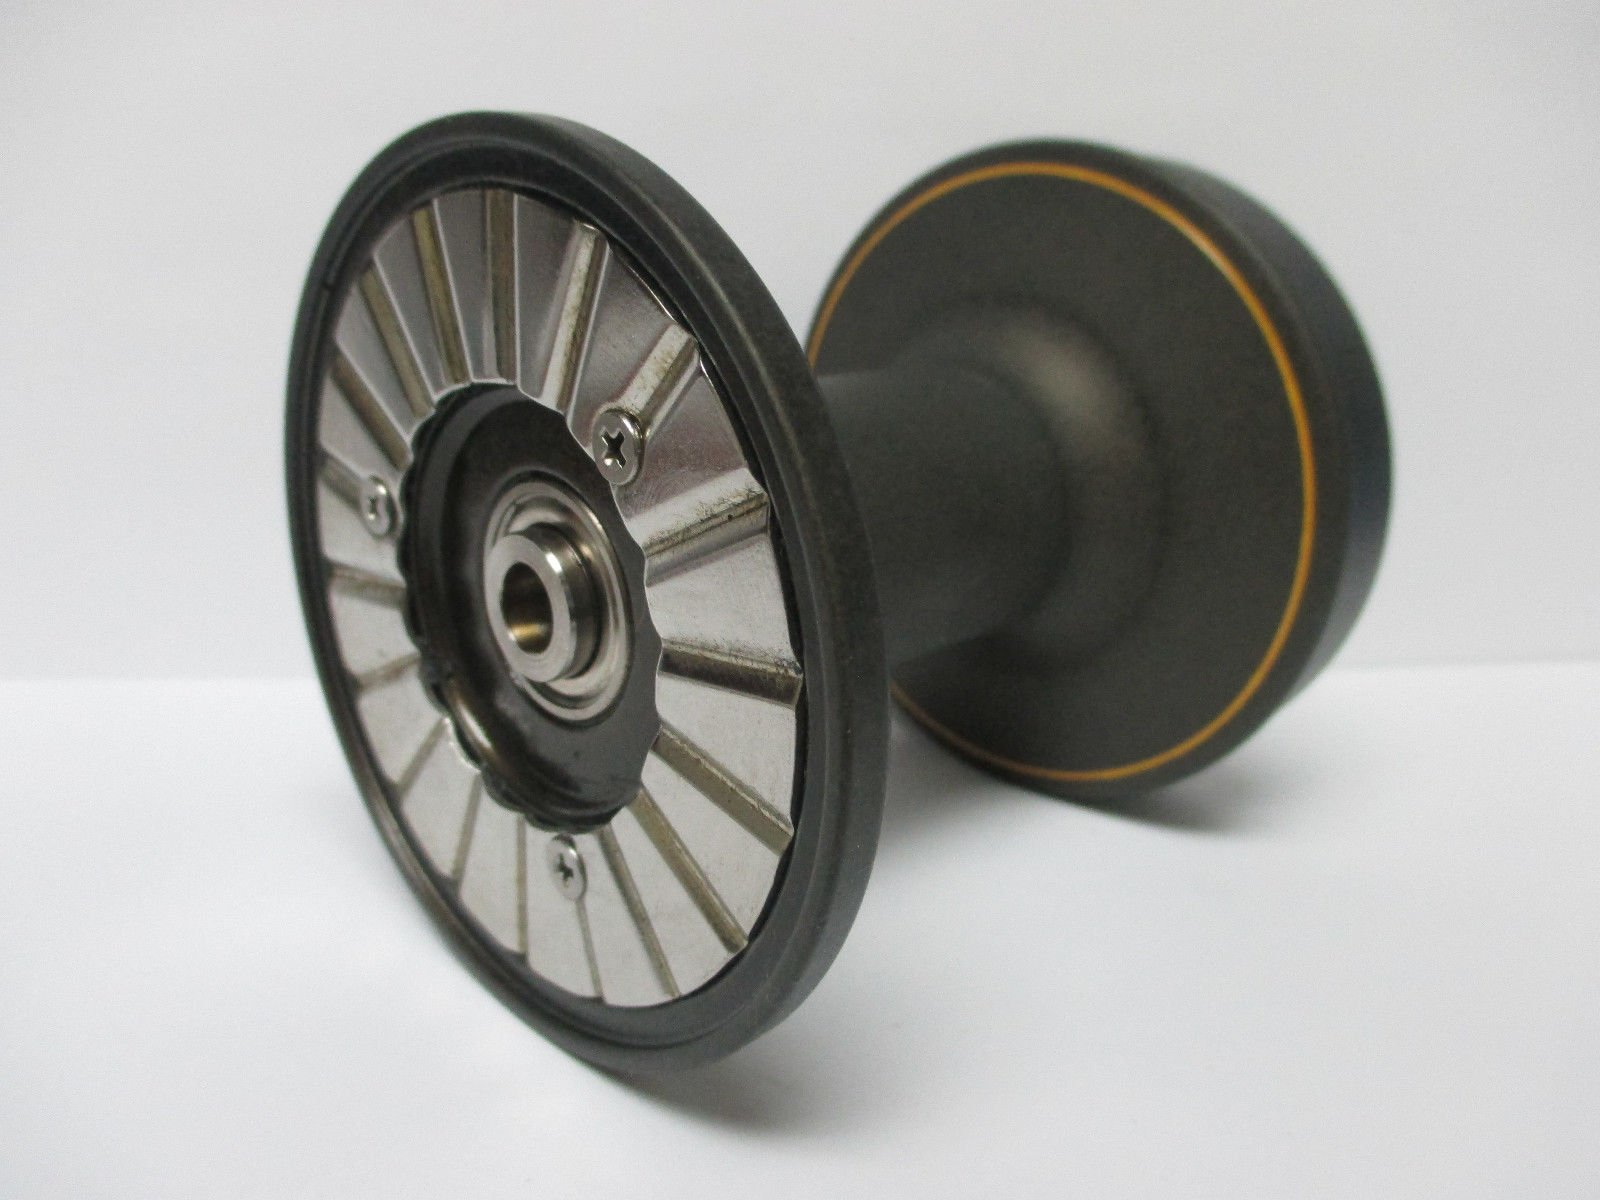 DUEL BIG GAME REEL PART - 4/0 Two Speed 4/0 - Spool Assembly